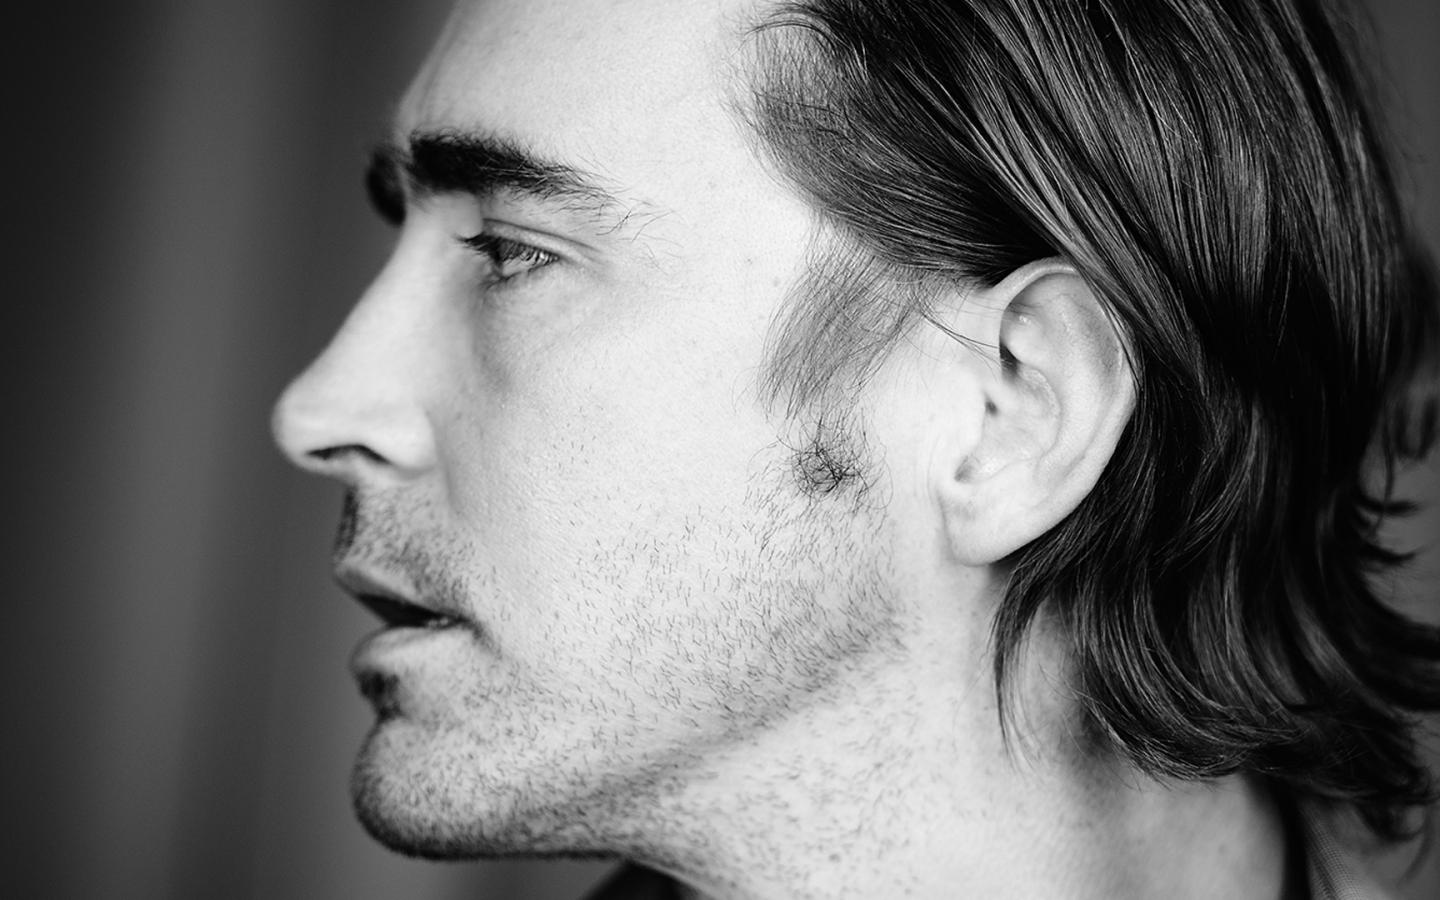 1440x900 - Lee Pace Wallpapers 29